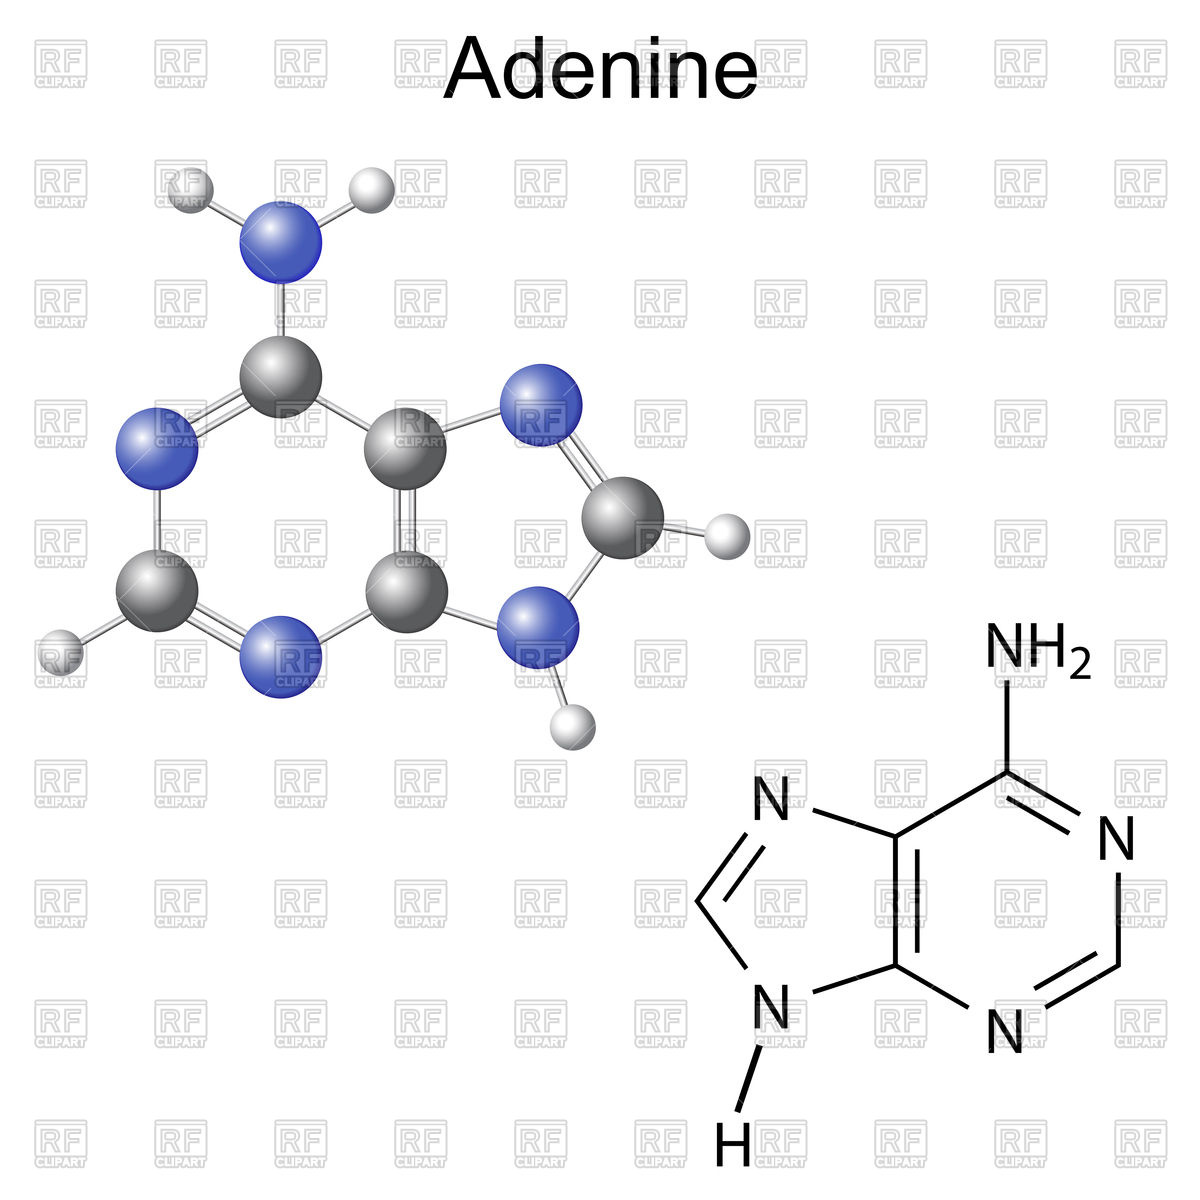 Chemical structural formula and model of adenine.